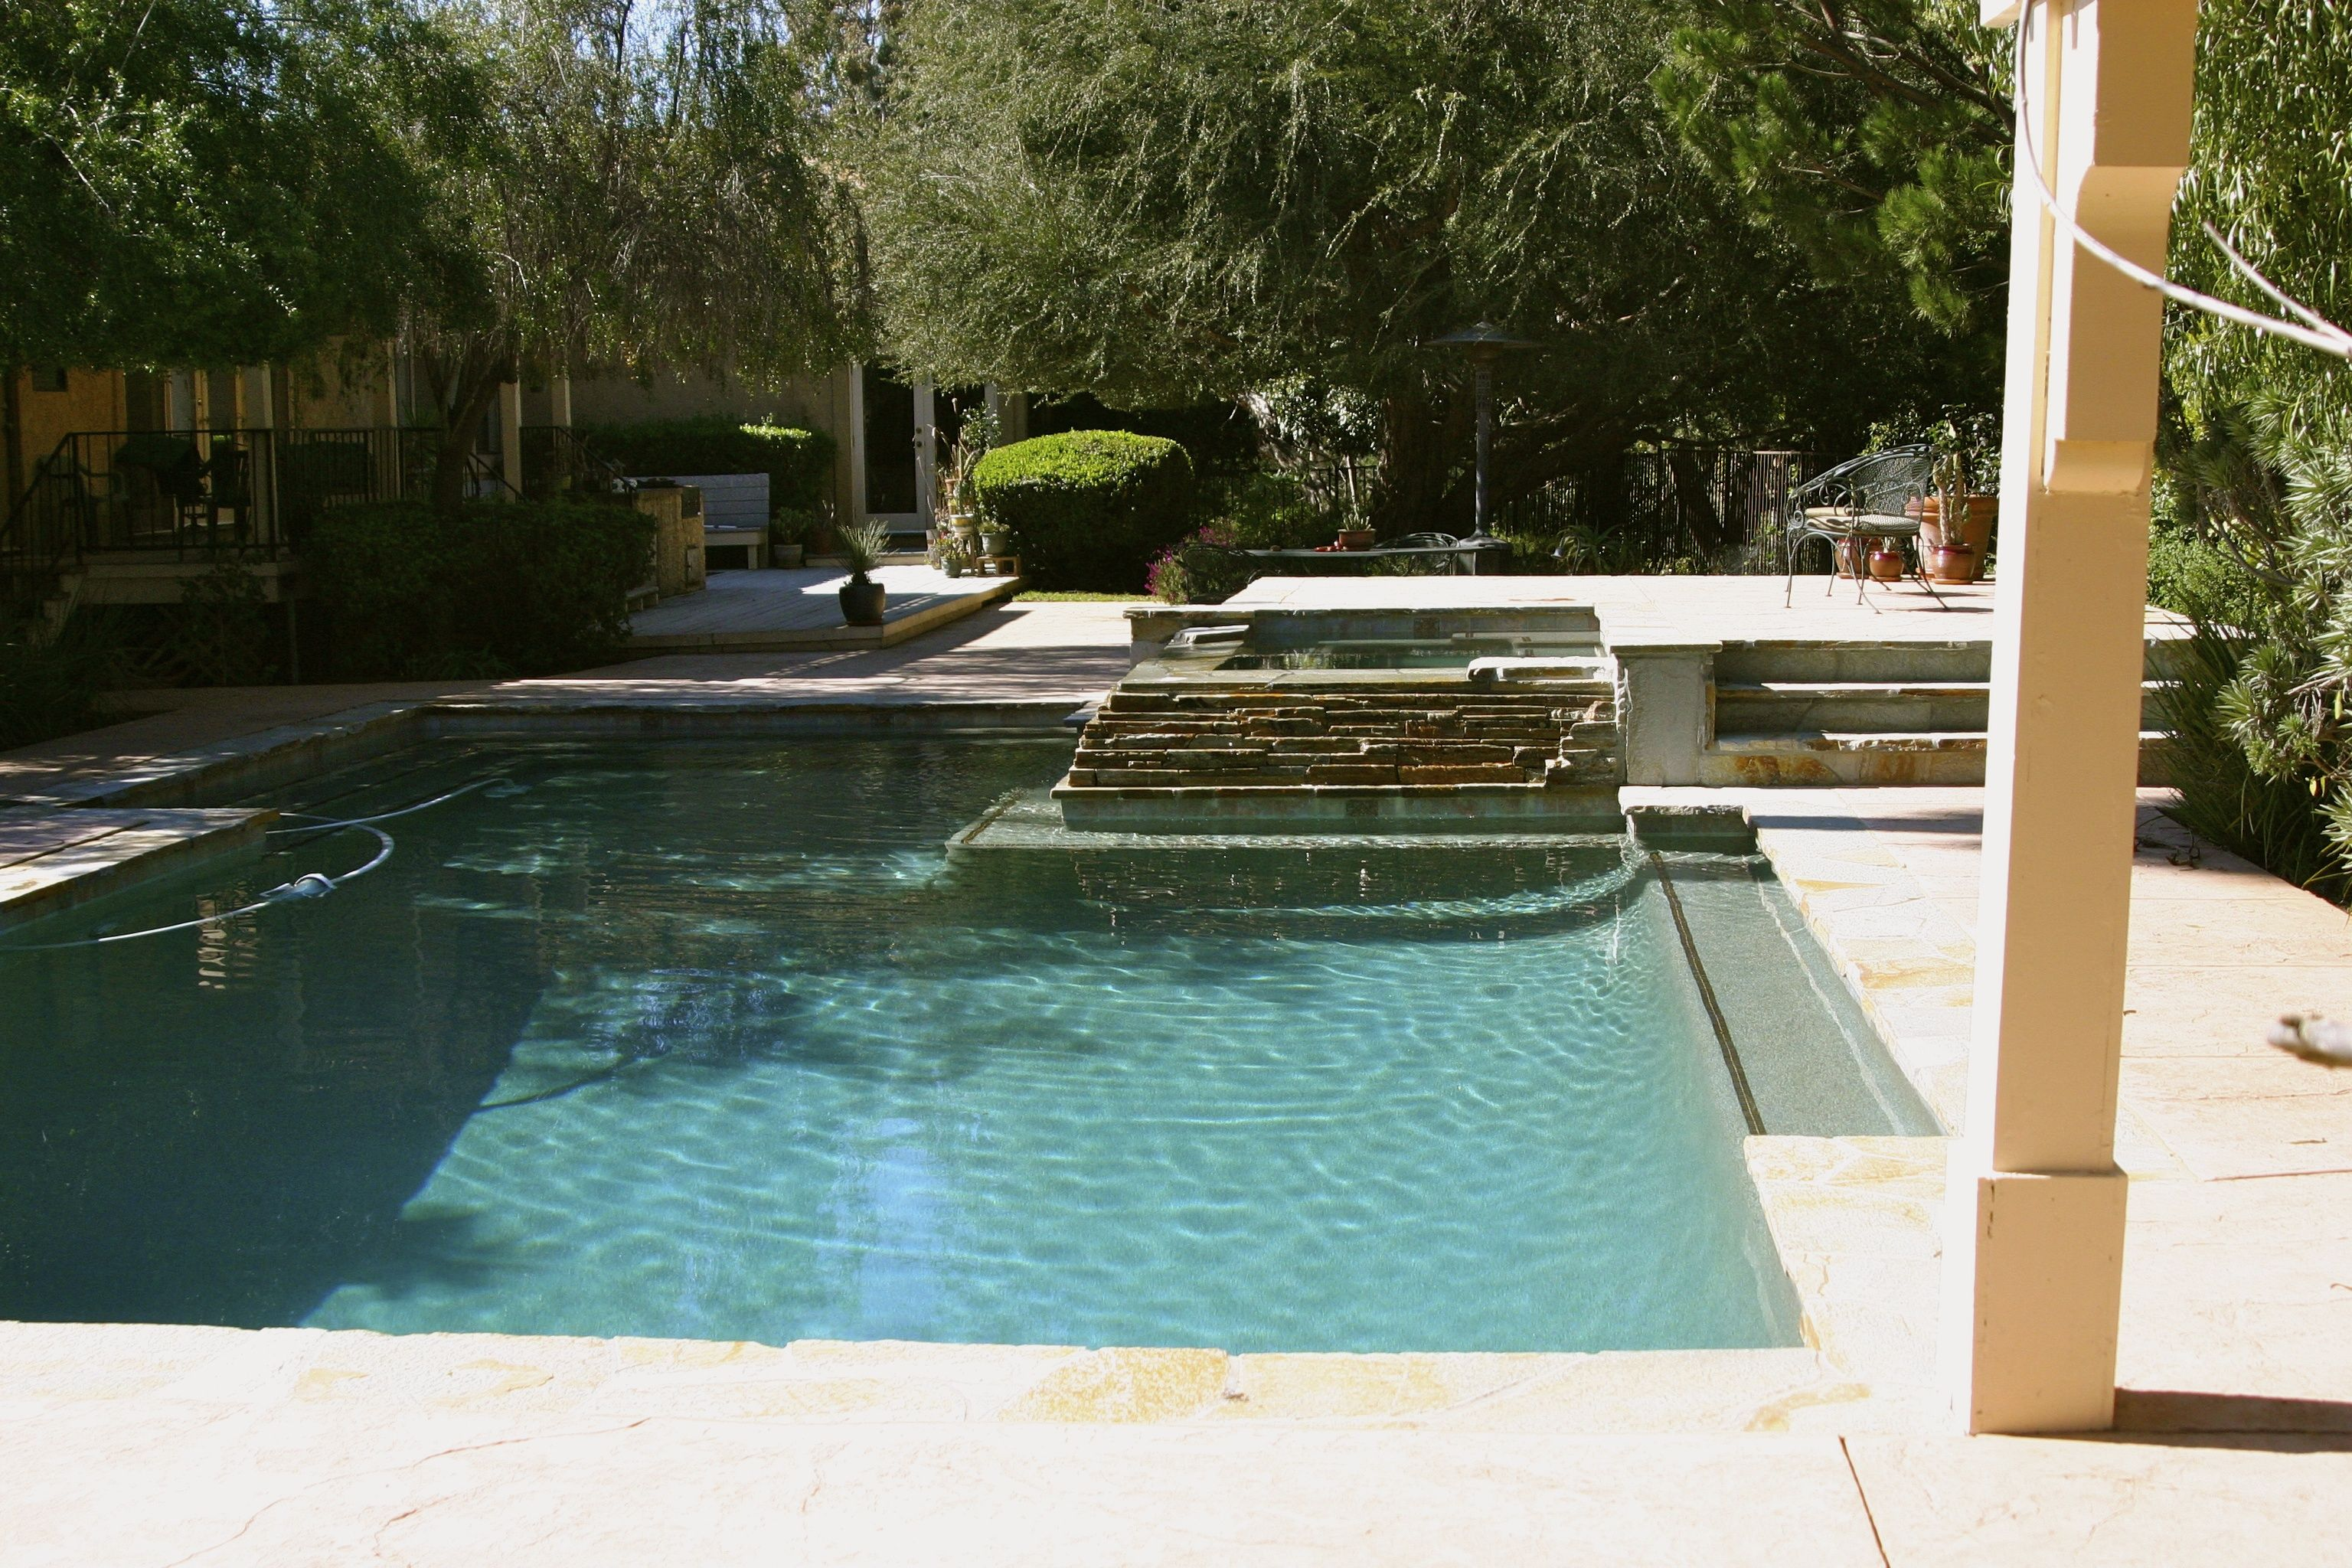 Clearflo Pools Prides Ourselves On Top Quality Swimming Pool Service,  Repairs, New Installations, Remodeling An Existing Pool, And New  Construction.